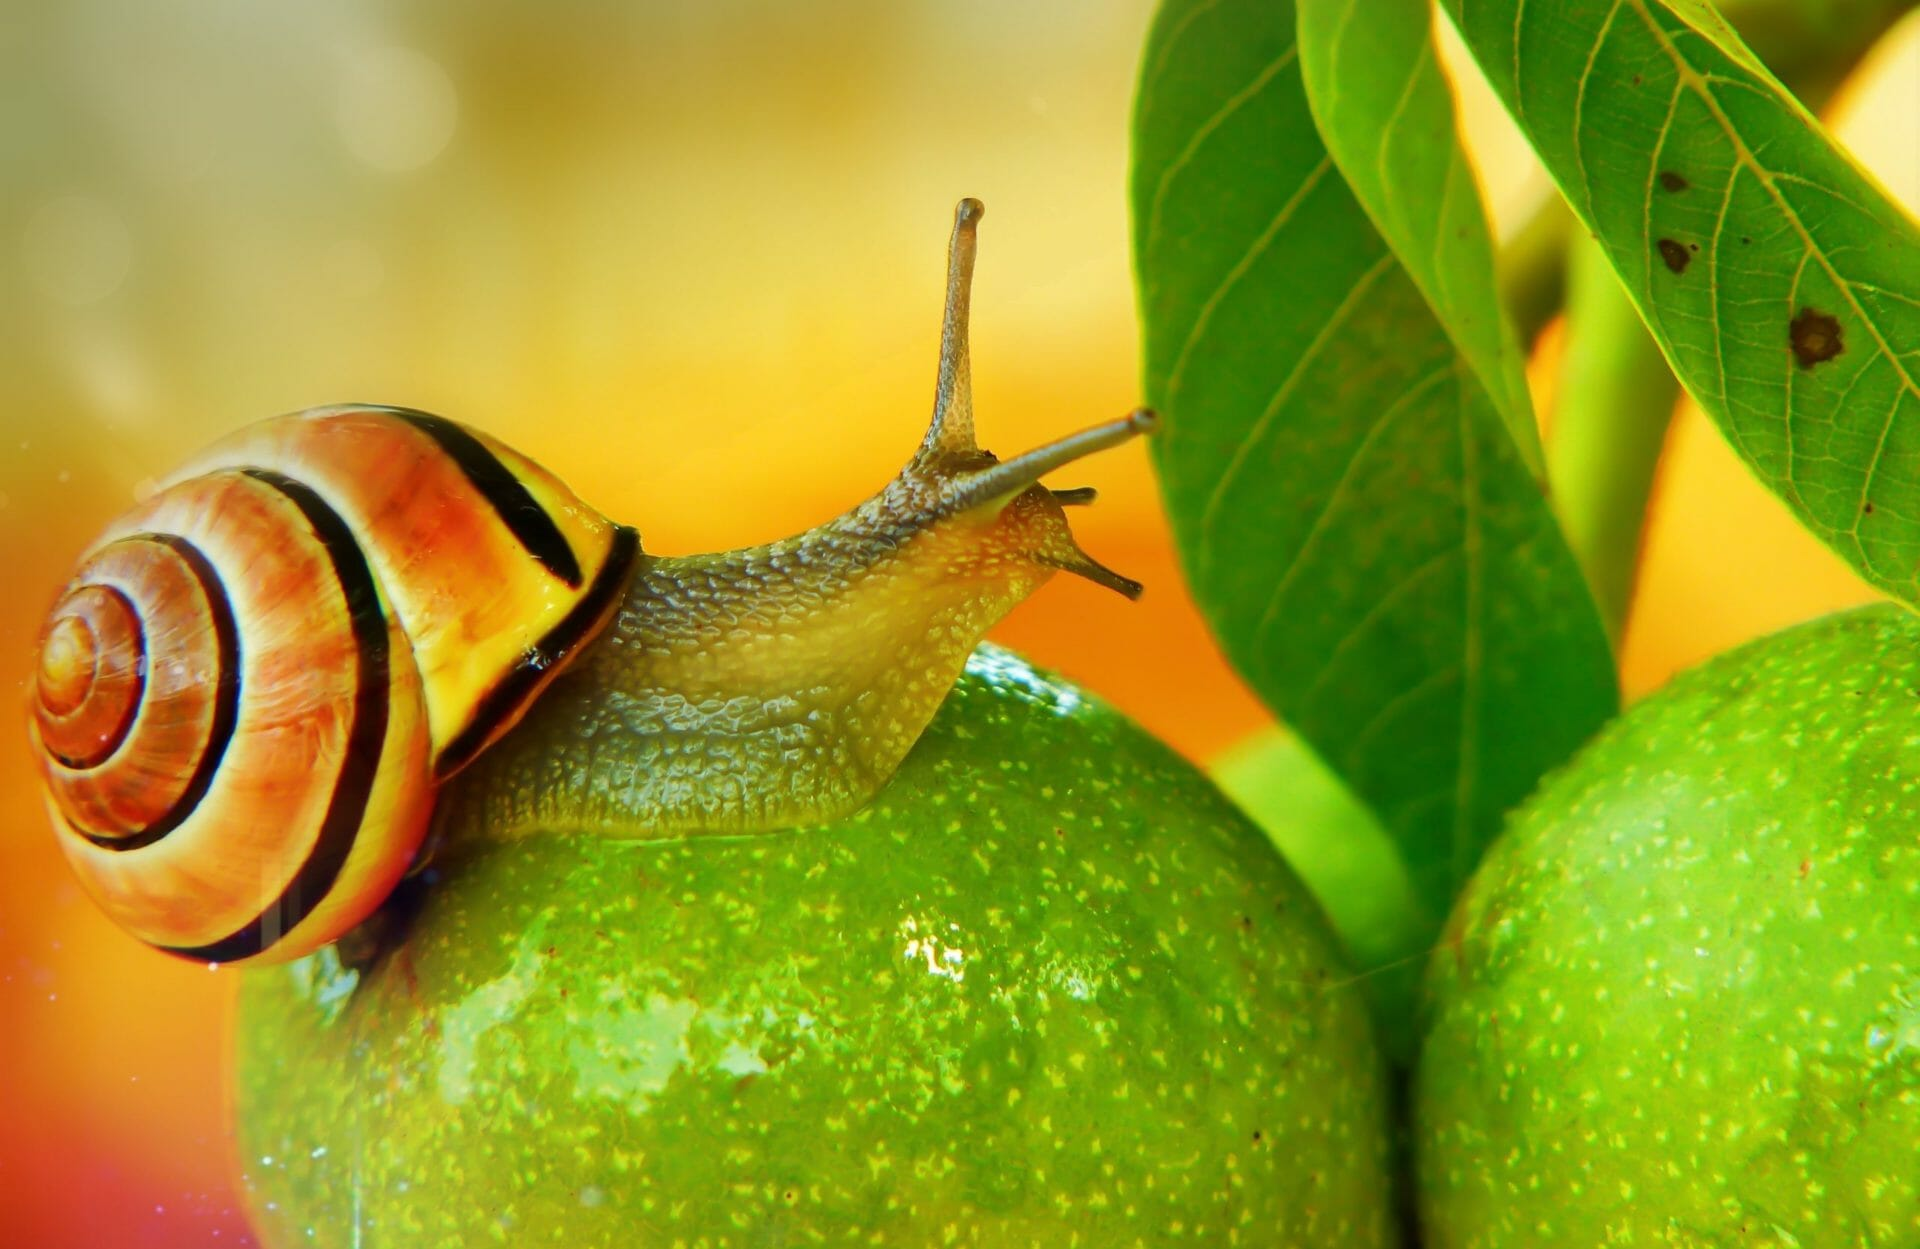 orange and black snail on green mango fruit